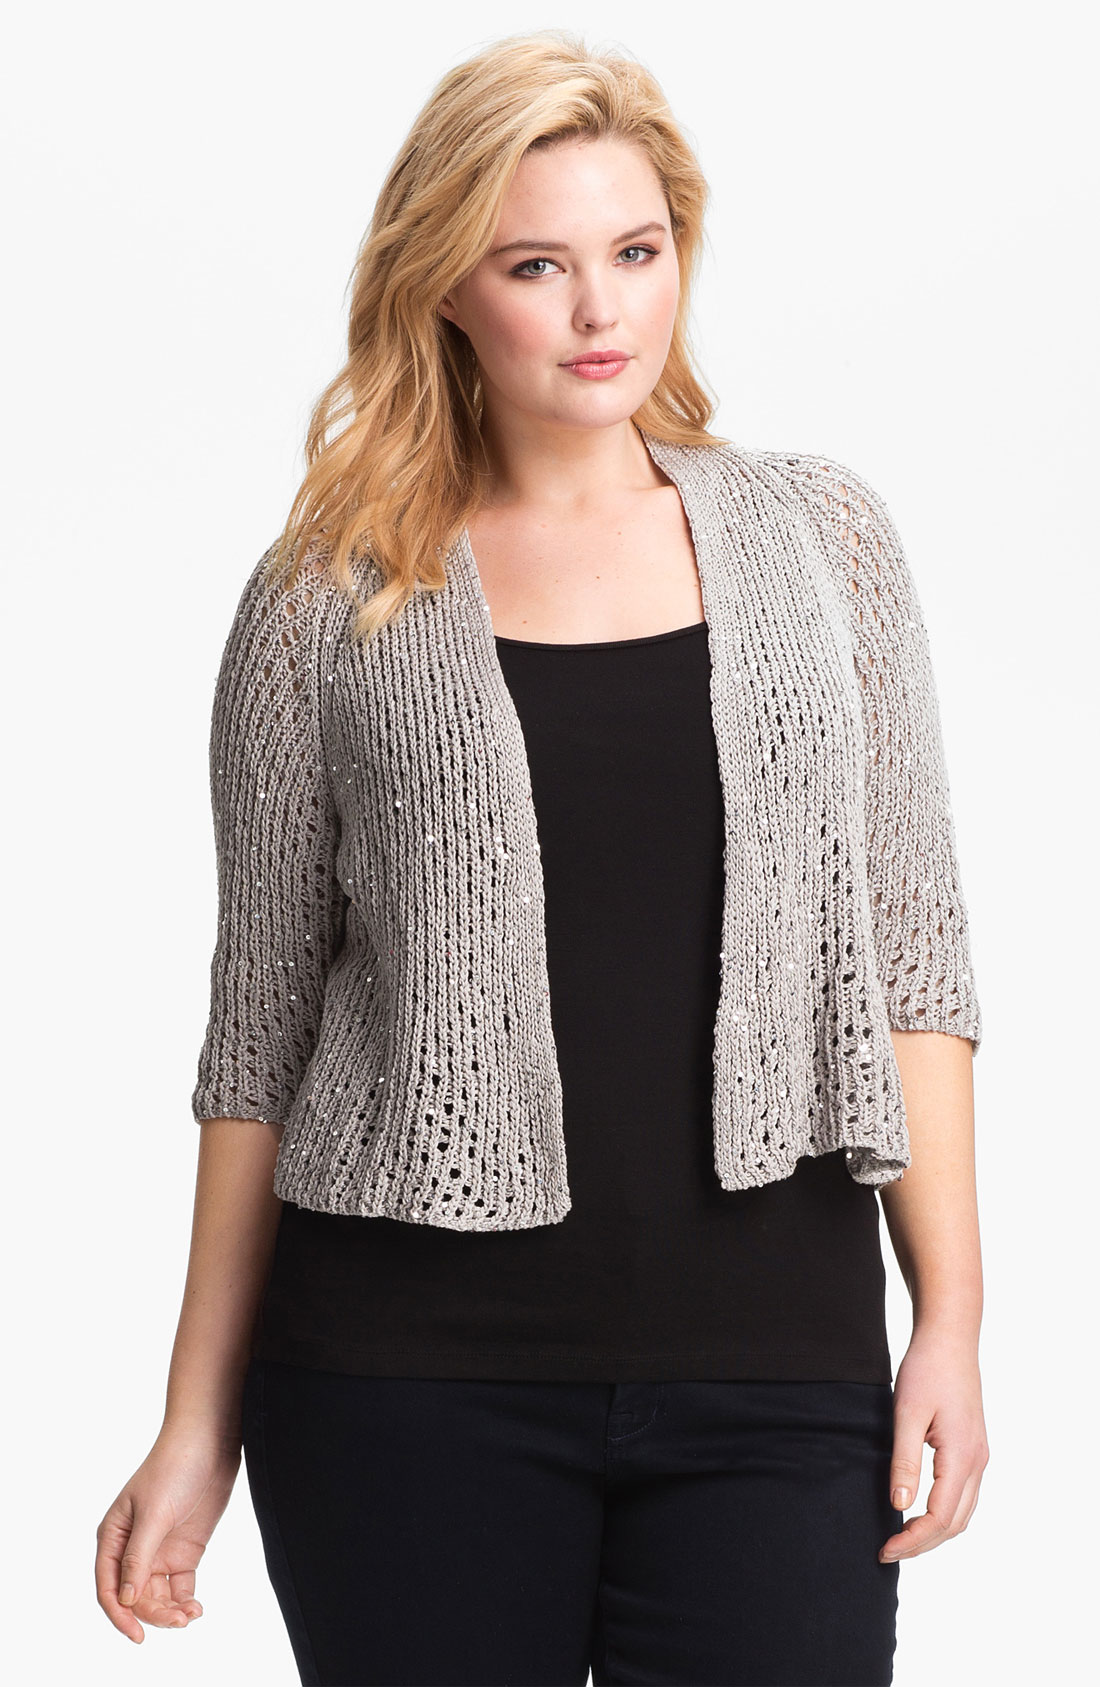 Shop from the world's largest selection and best deals for Women's Shrug Jumpers and Cardigans. Free delivery and free returns on eBay Plus items.